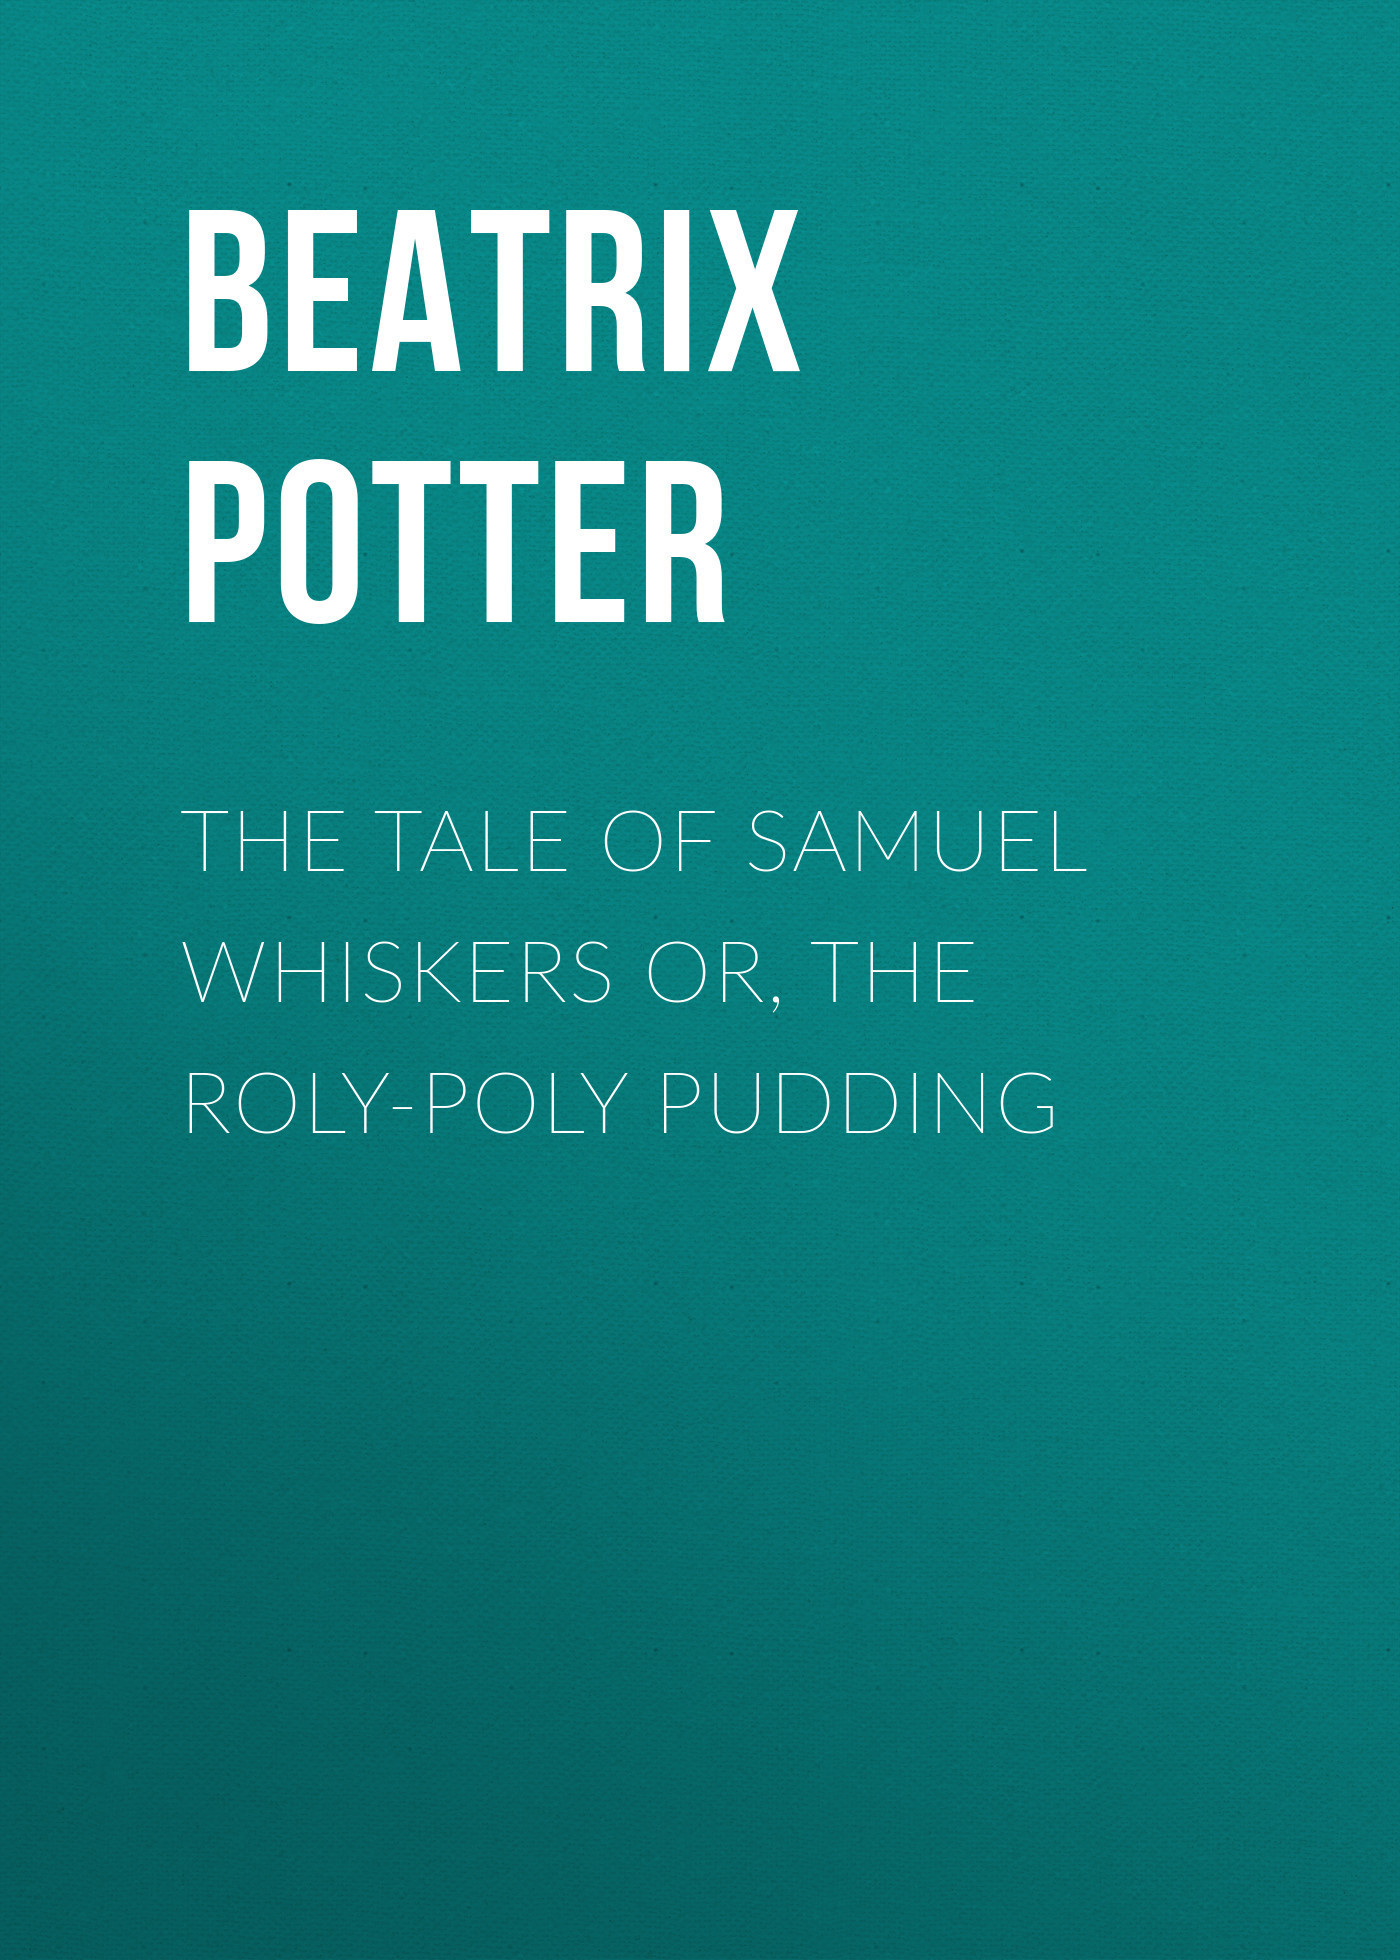 Беатрис Поттер The Tale of Samuel Whiskers or, The Roly-Poly Pudding